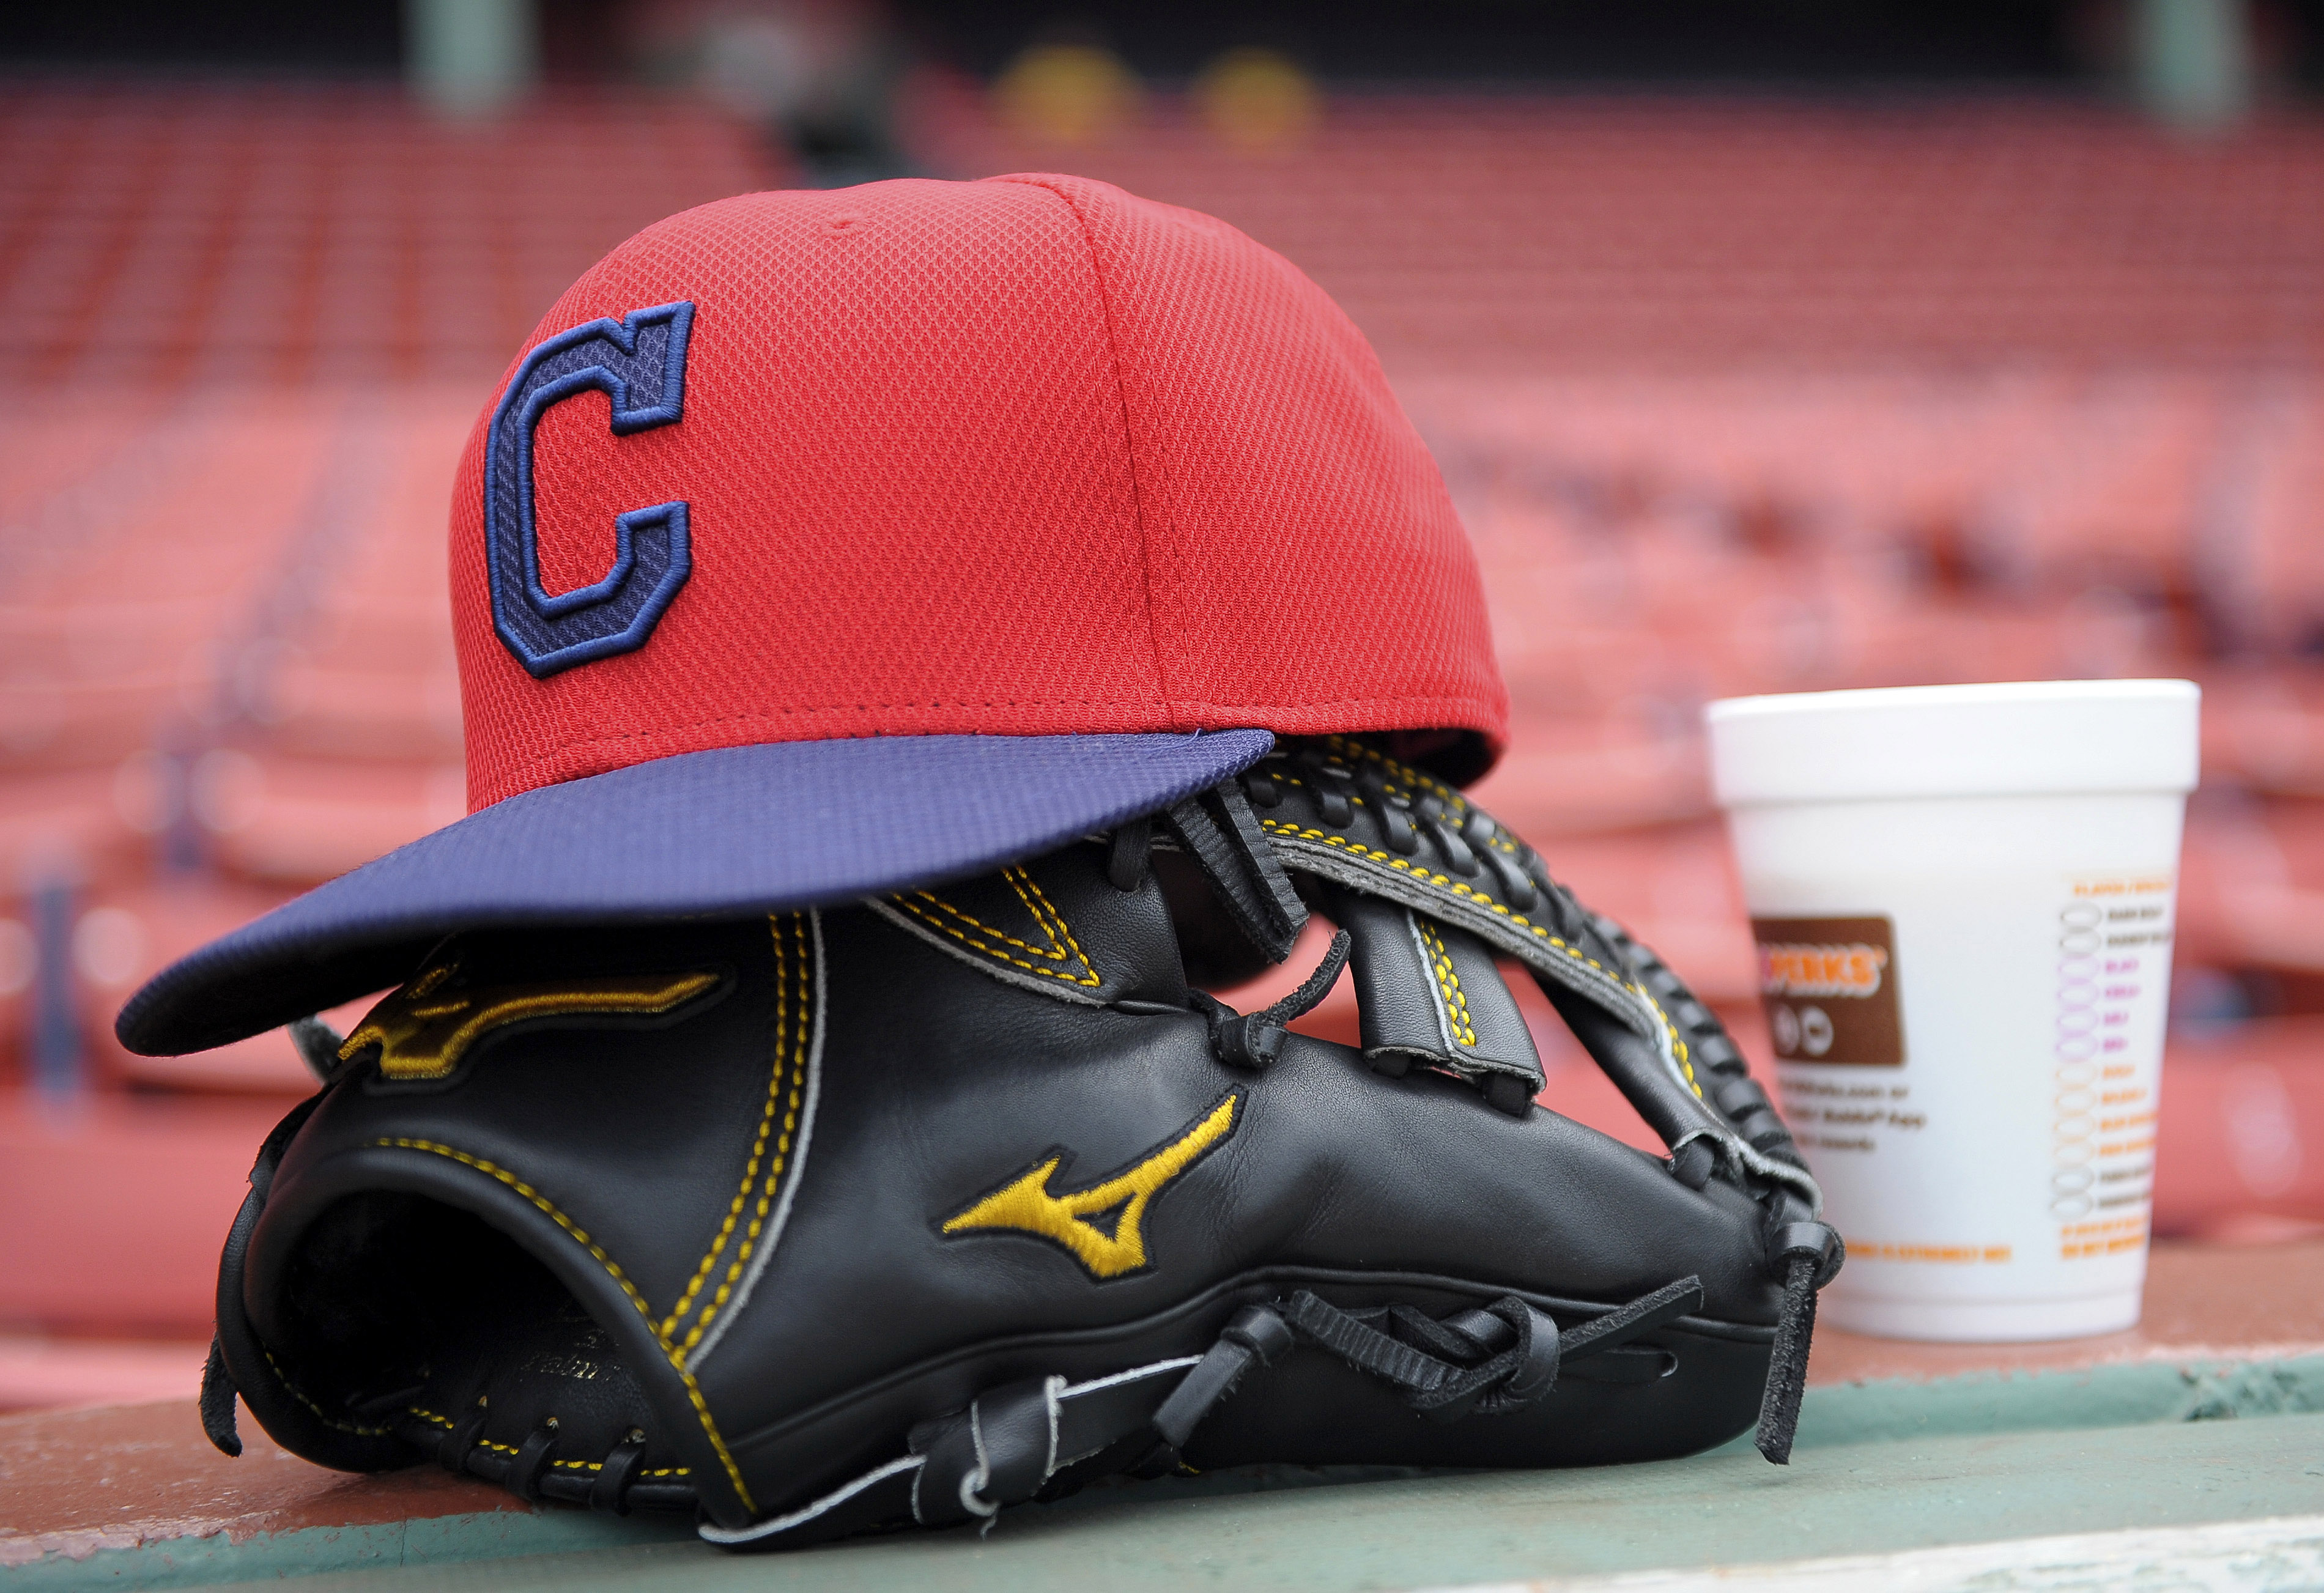 8754715-mlb-cleveland-indians-at-boston-red-sox